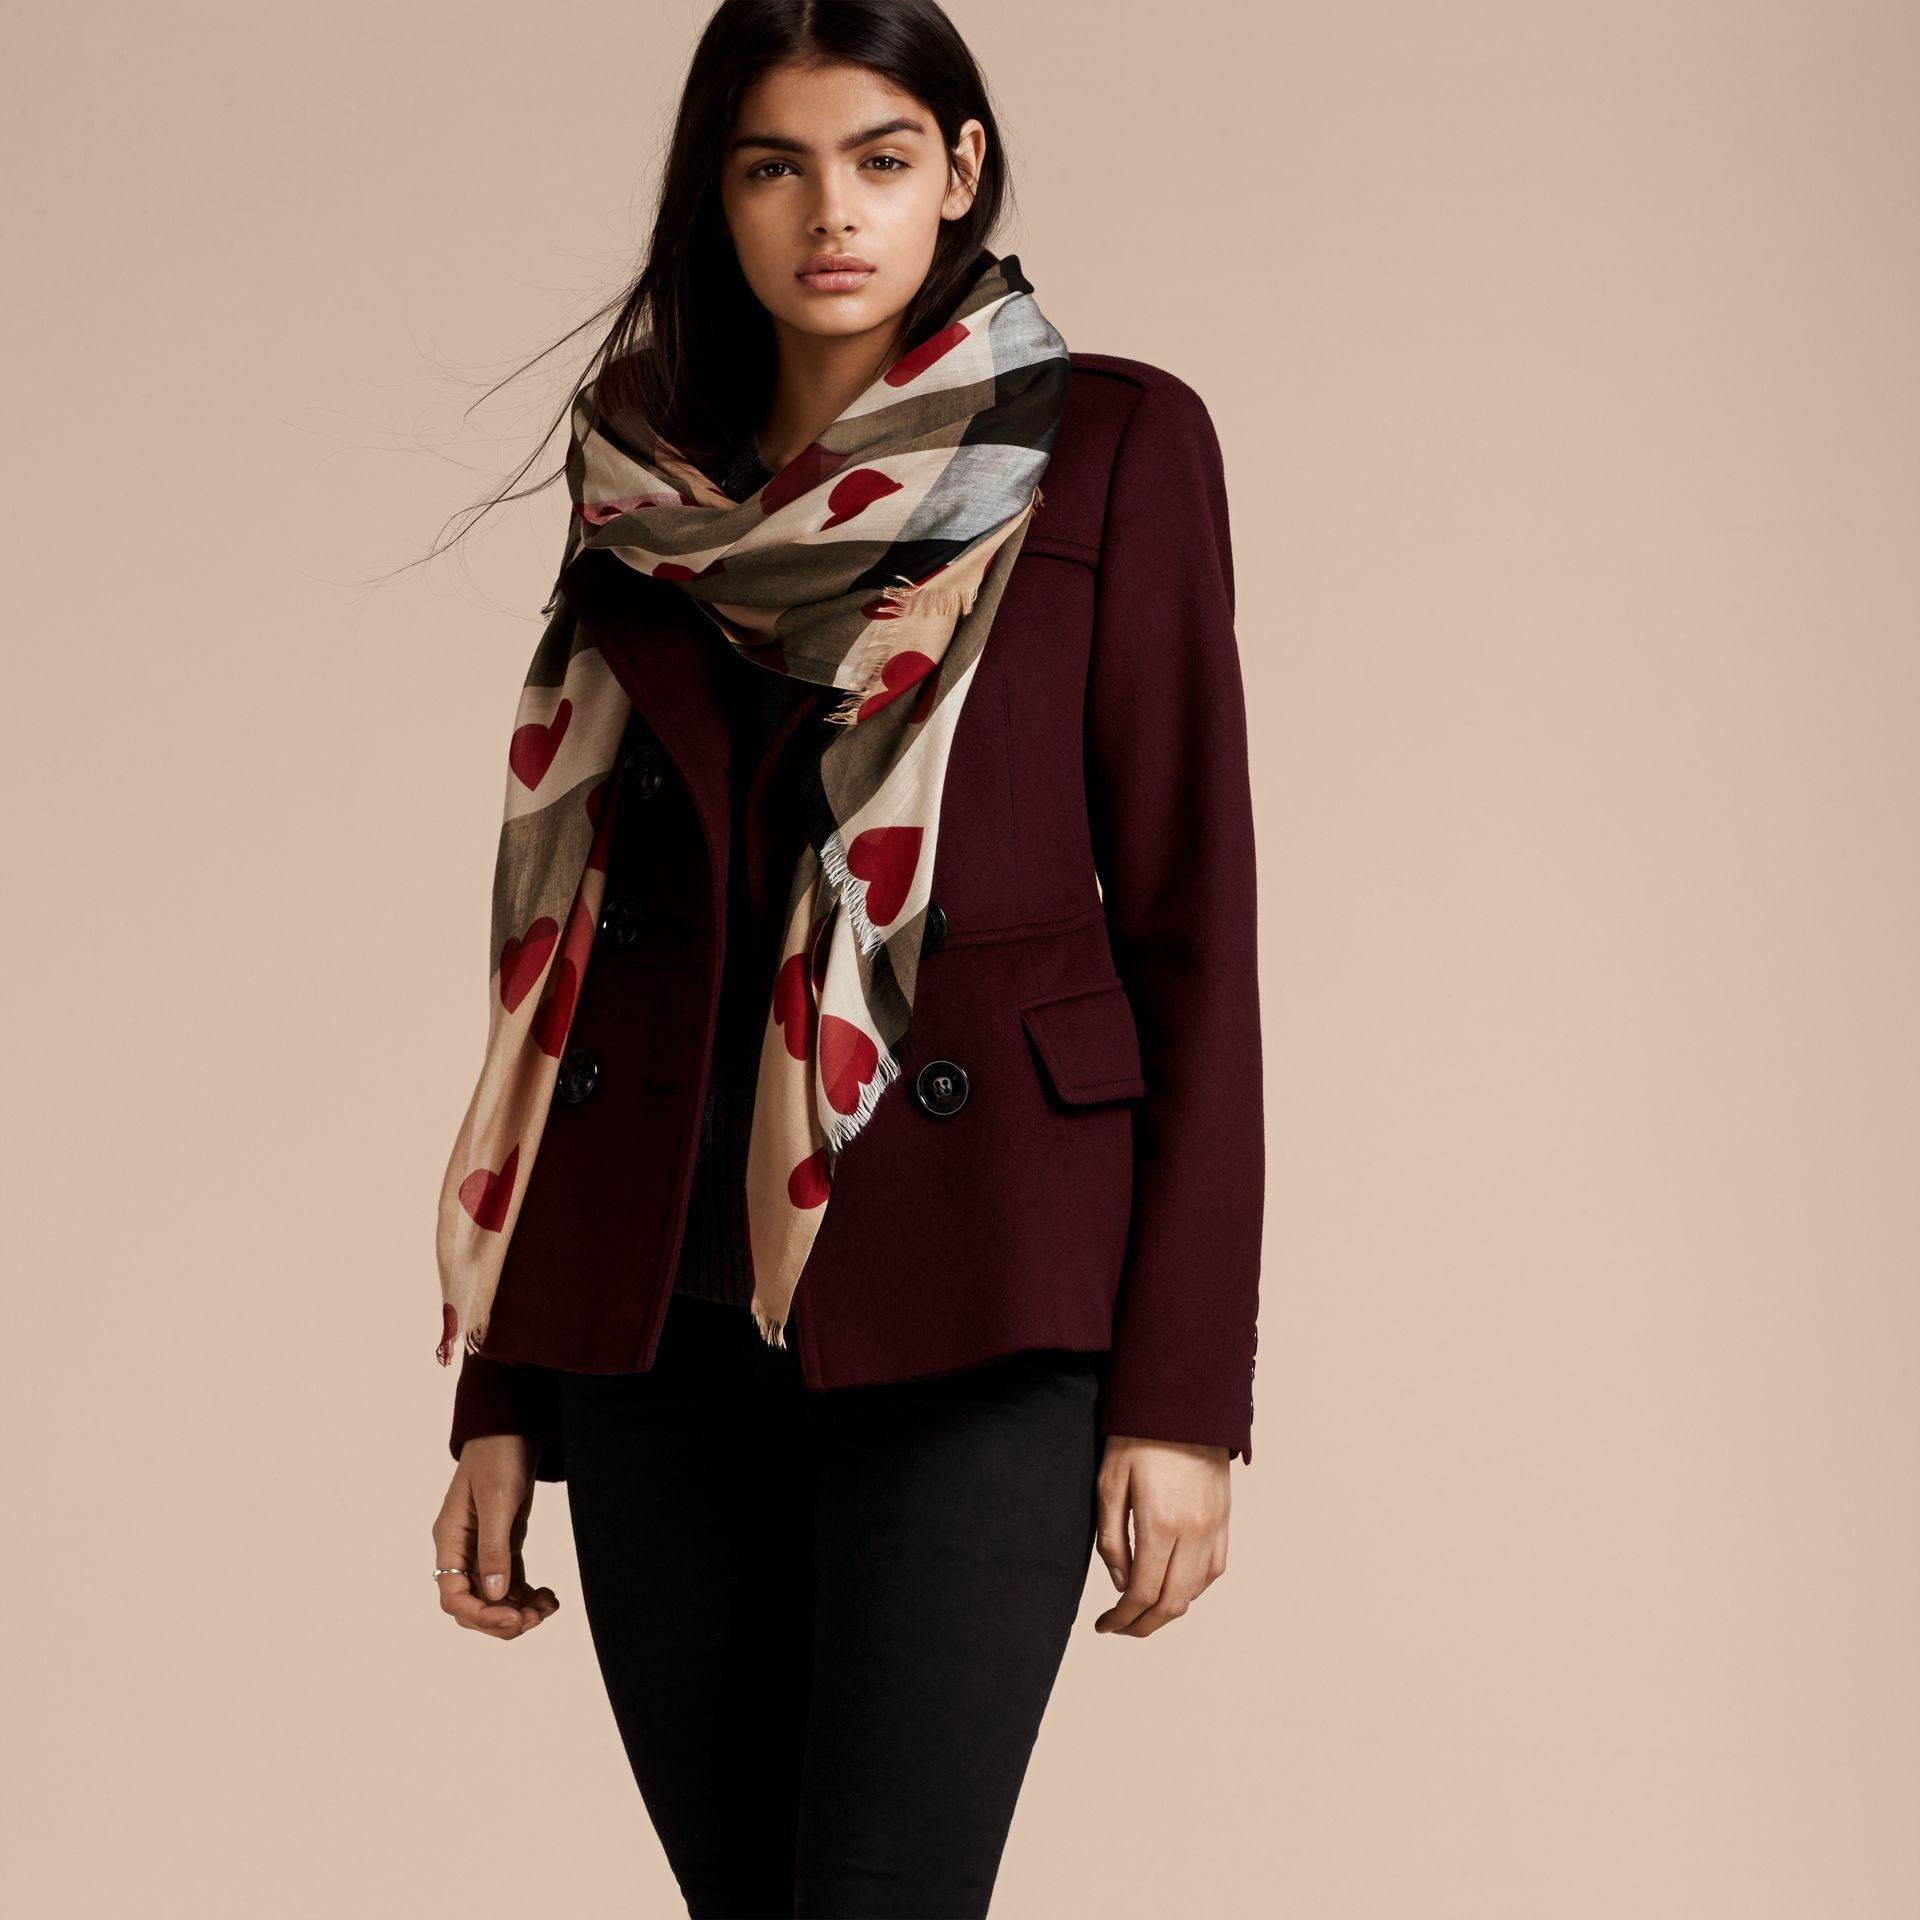 Heart and Check Modal and Cashmere Scarf in Camel/red - Women | Burberry United States - gallery image 3